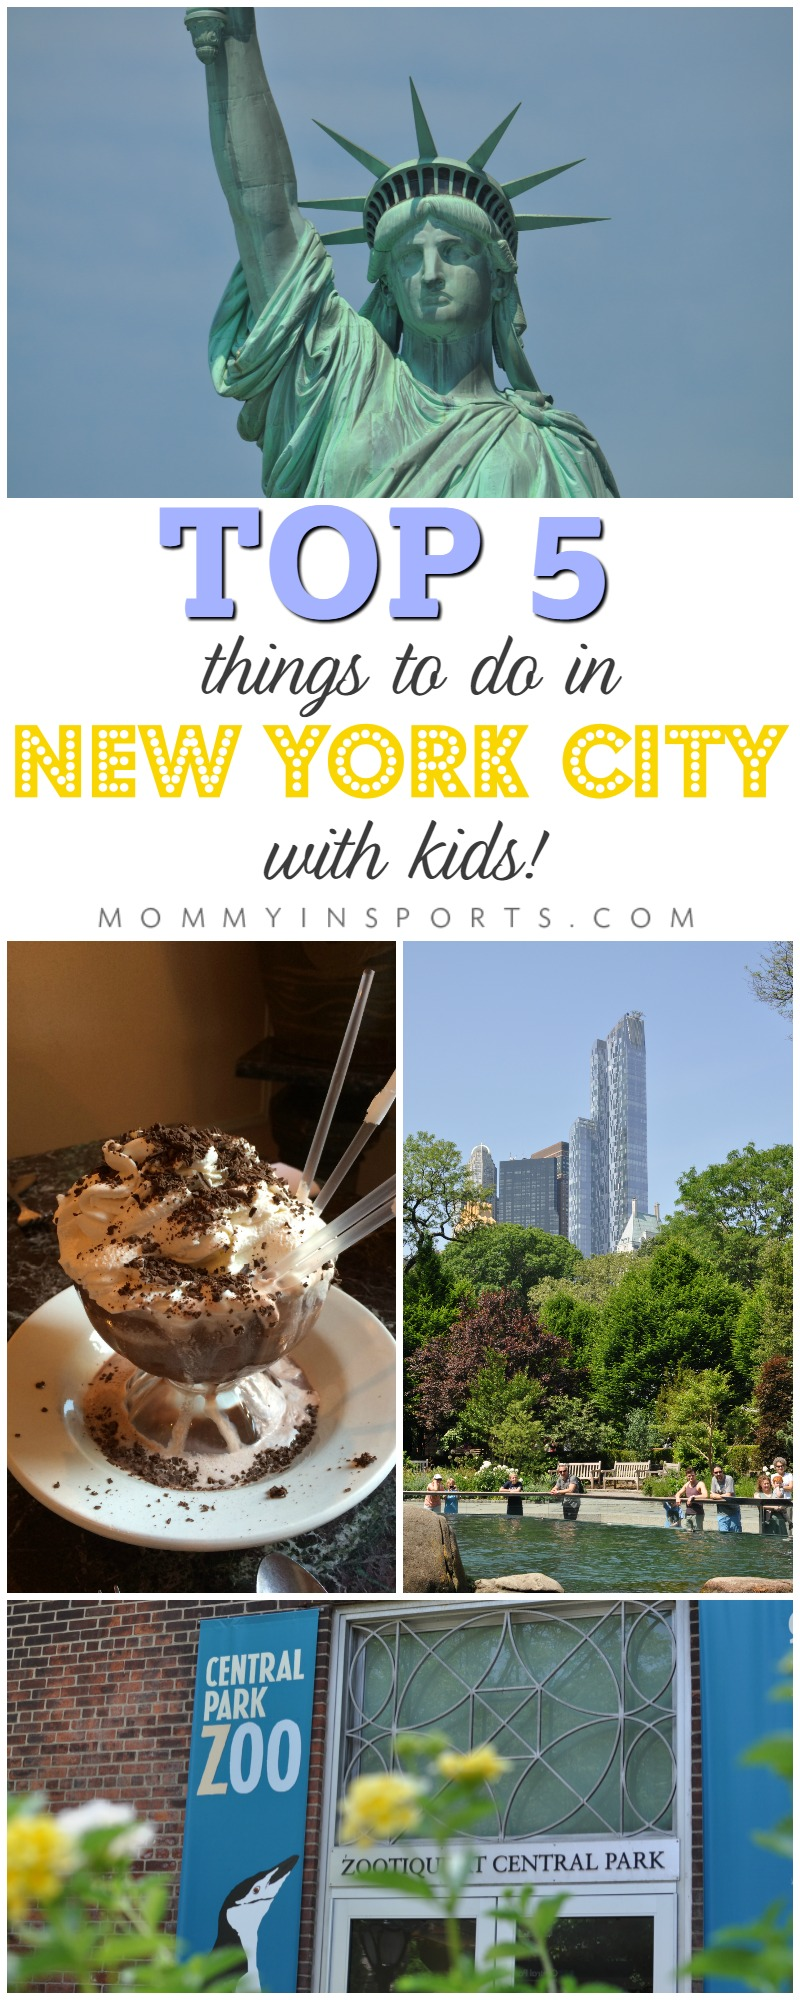 Top 5 things to do in new york city with kids kristen hewitt for Family things to do in nyc